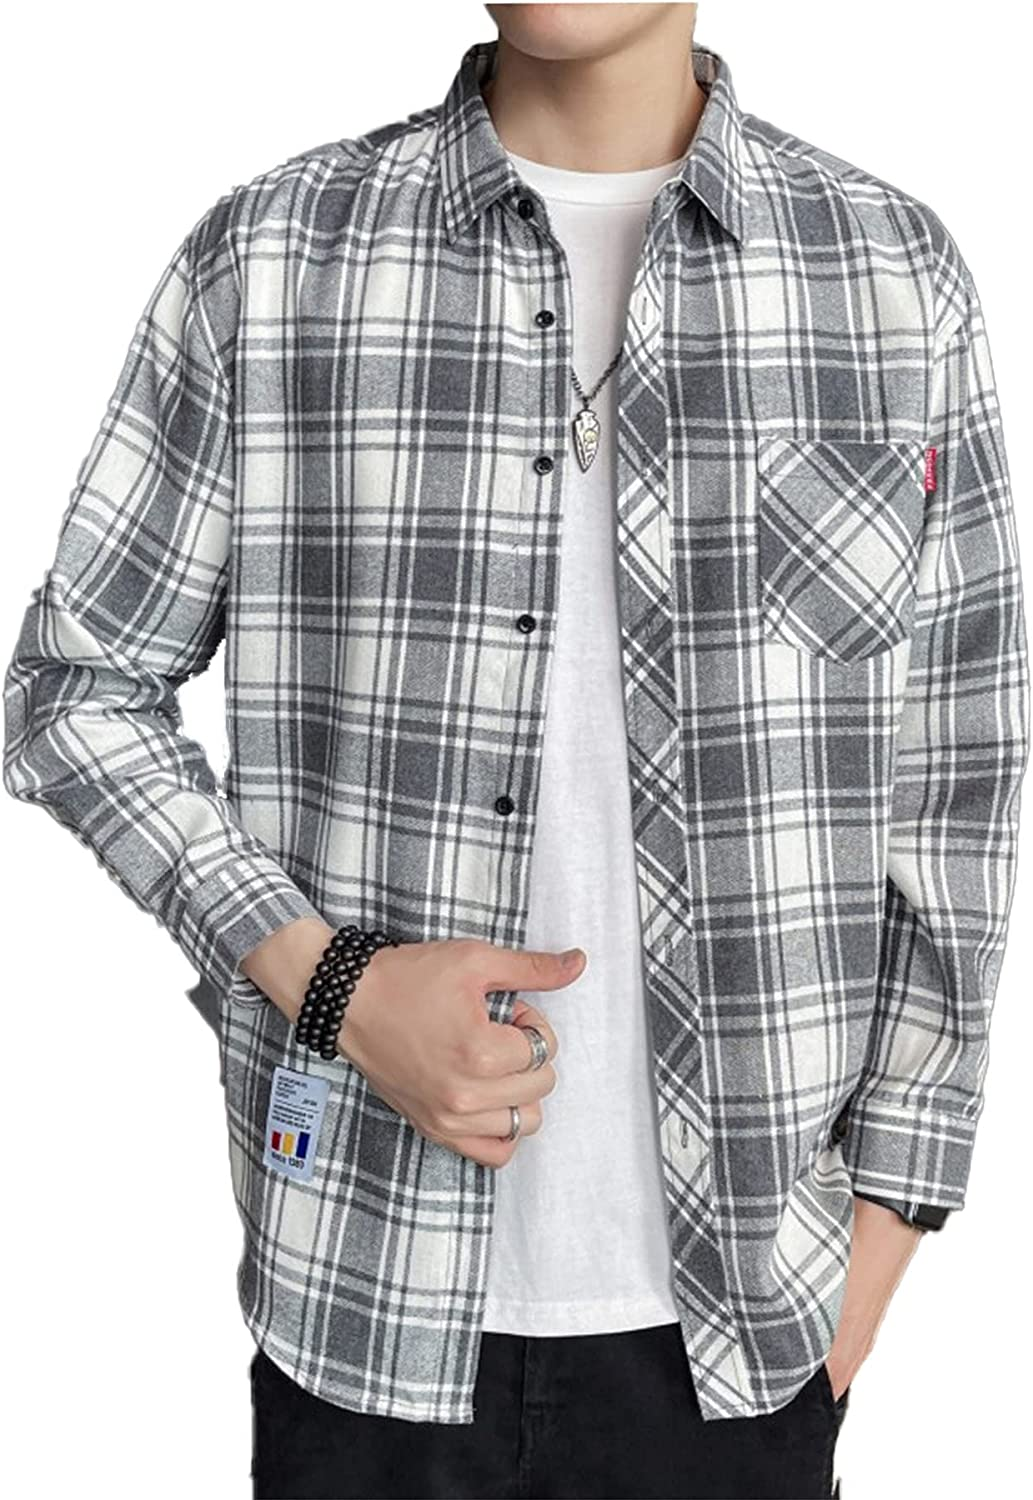 New Men's Long-Sleeved Shirts Button Closures Men's Plaid Striped Oxford Casual Shirts